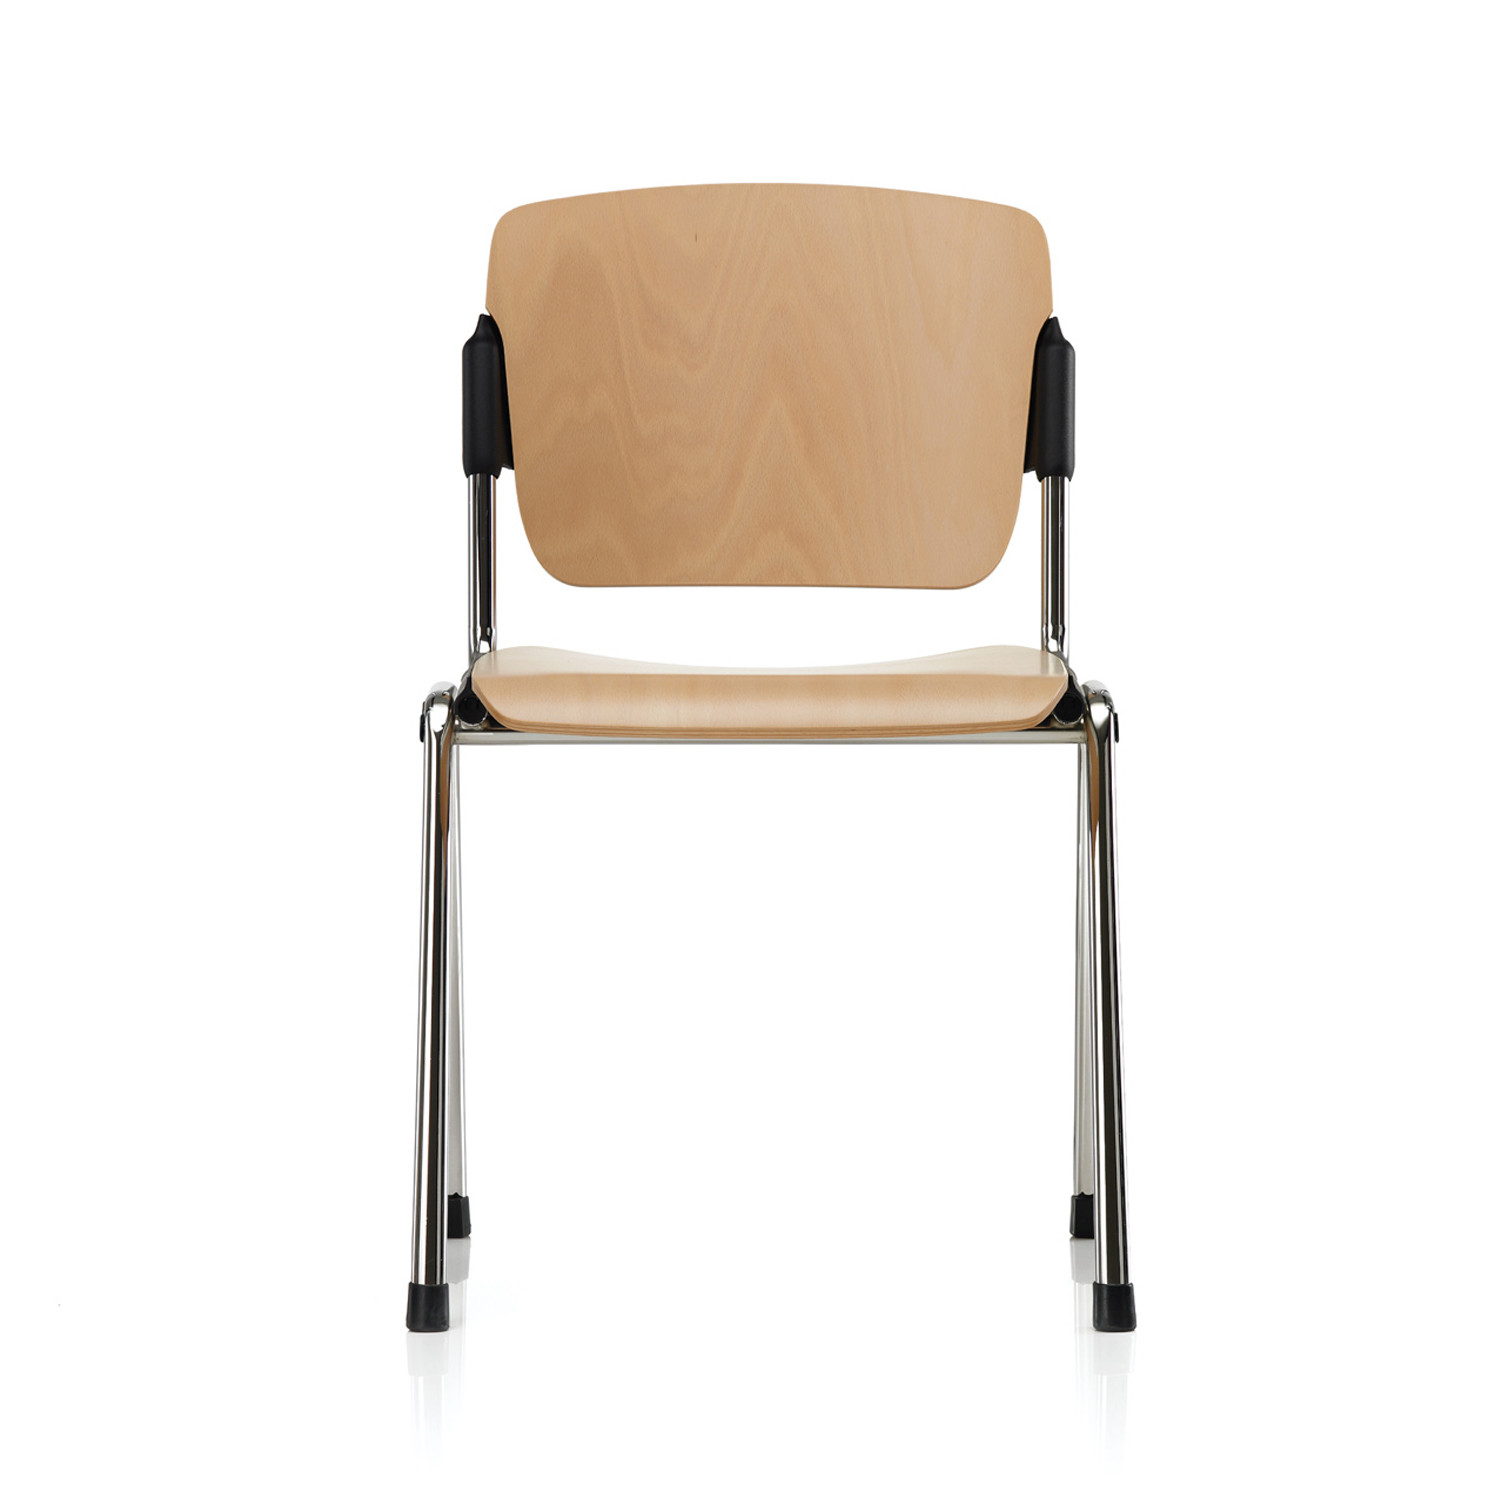 Series 8000 Stacking Visitors Chairs